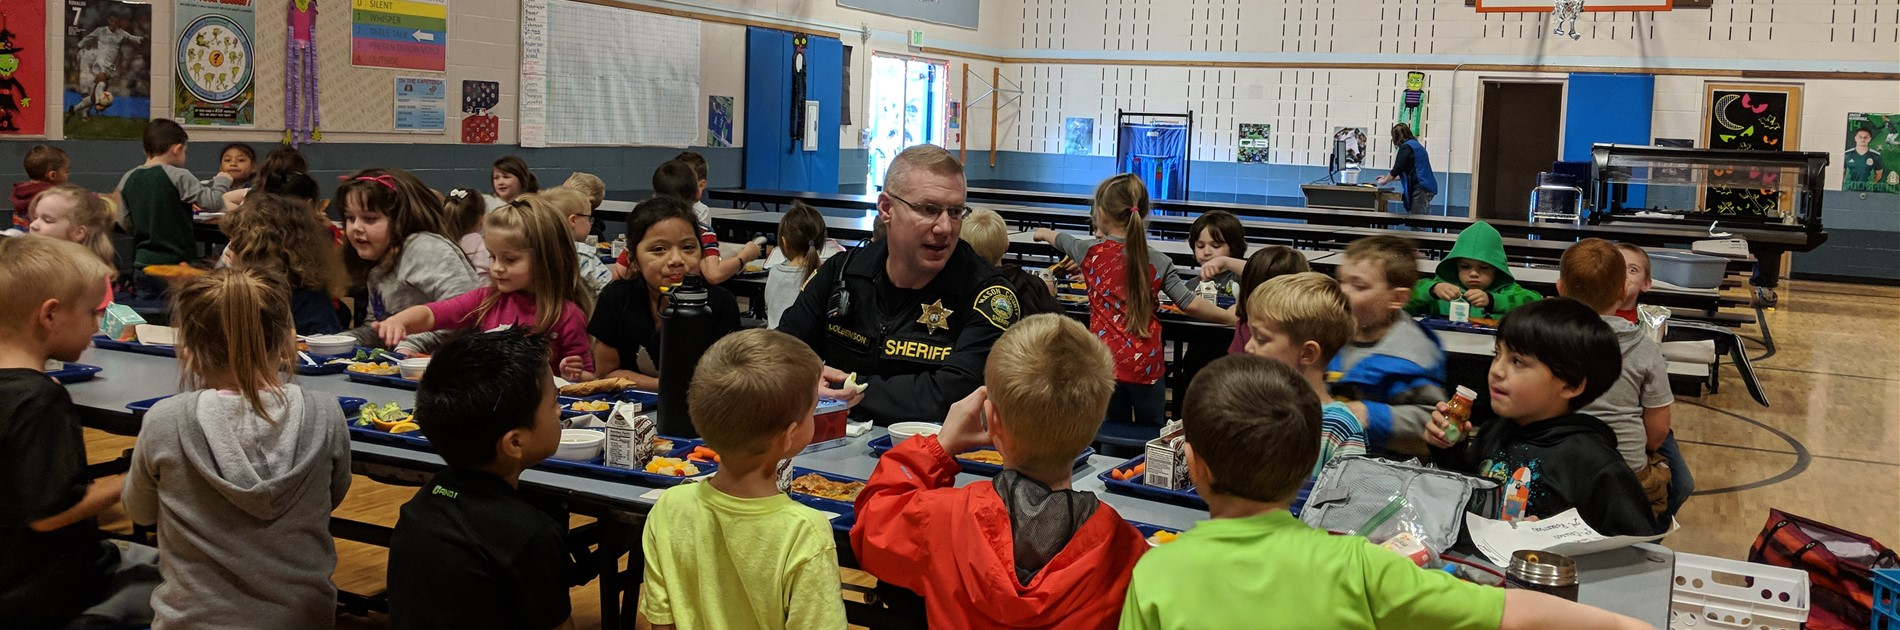 Sheriff Deputy Matt has lunch with students